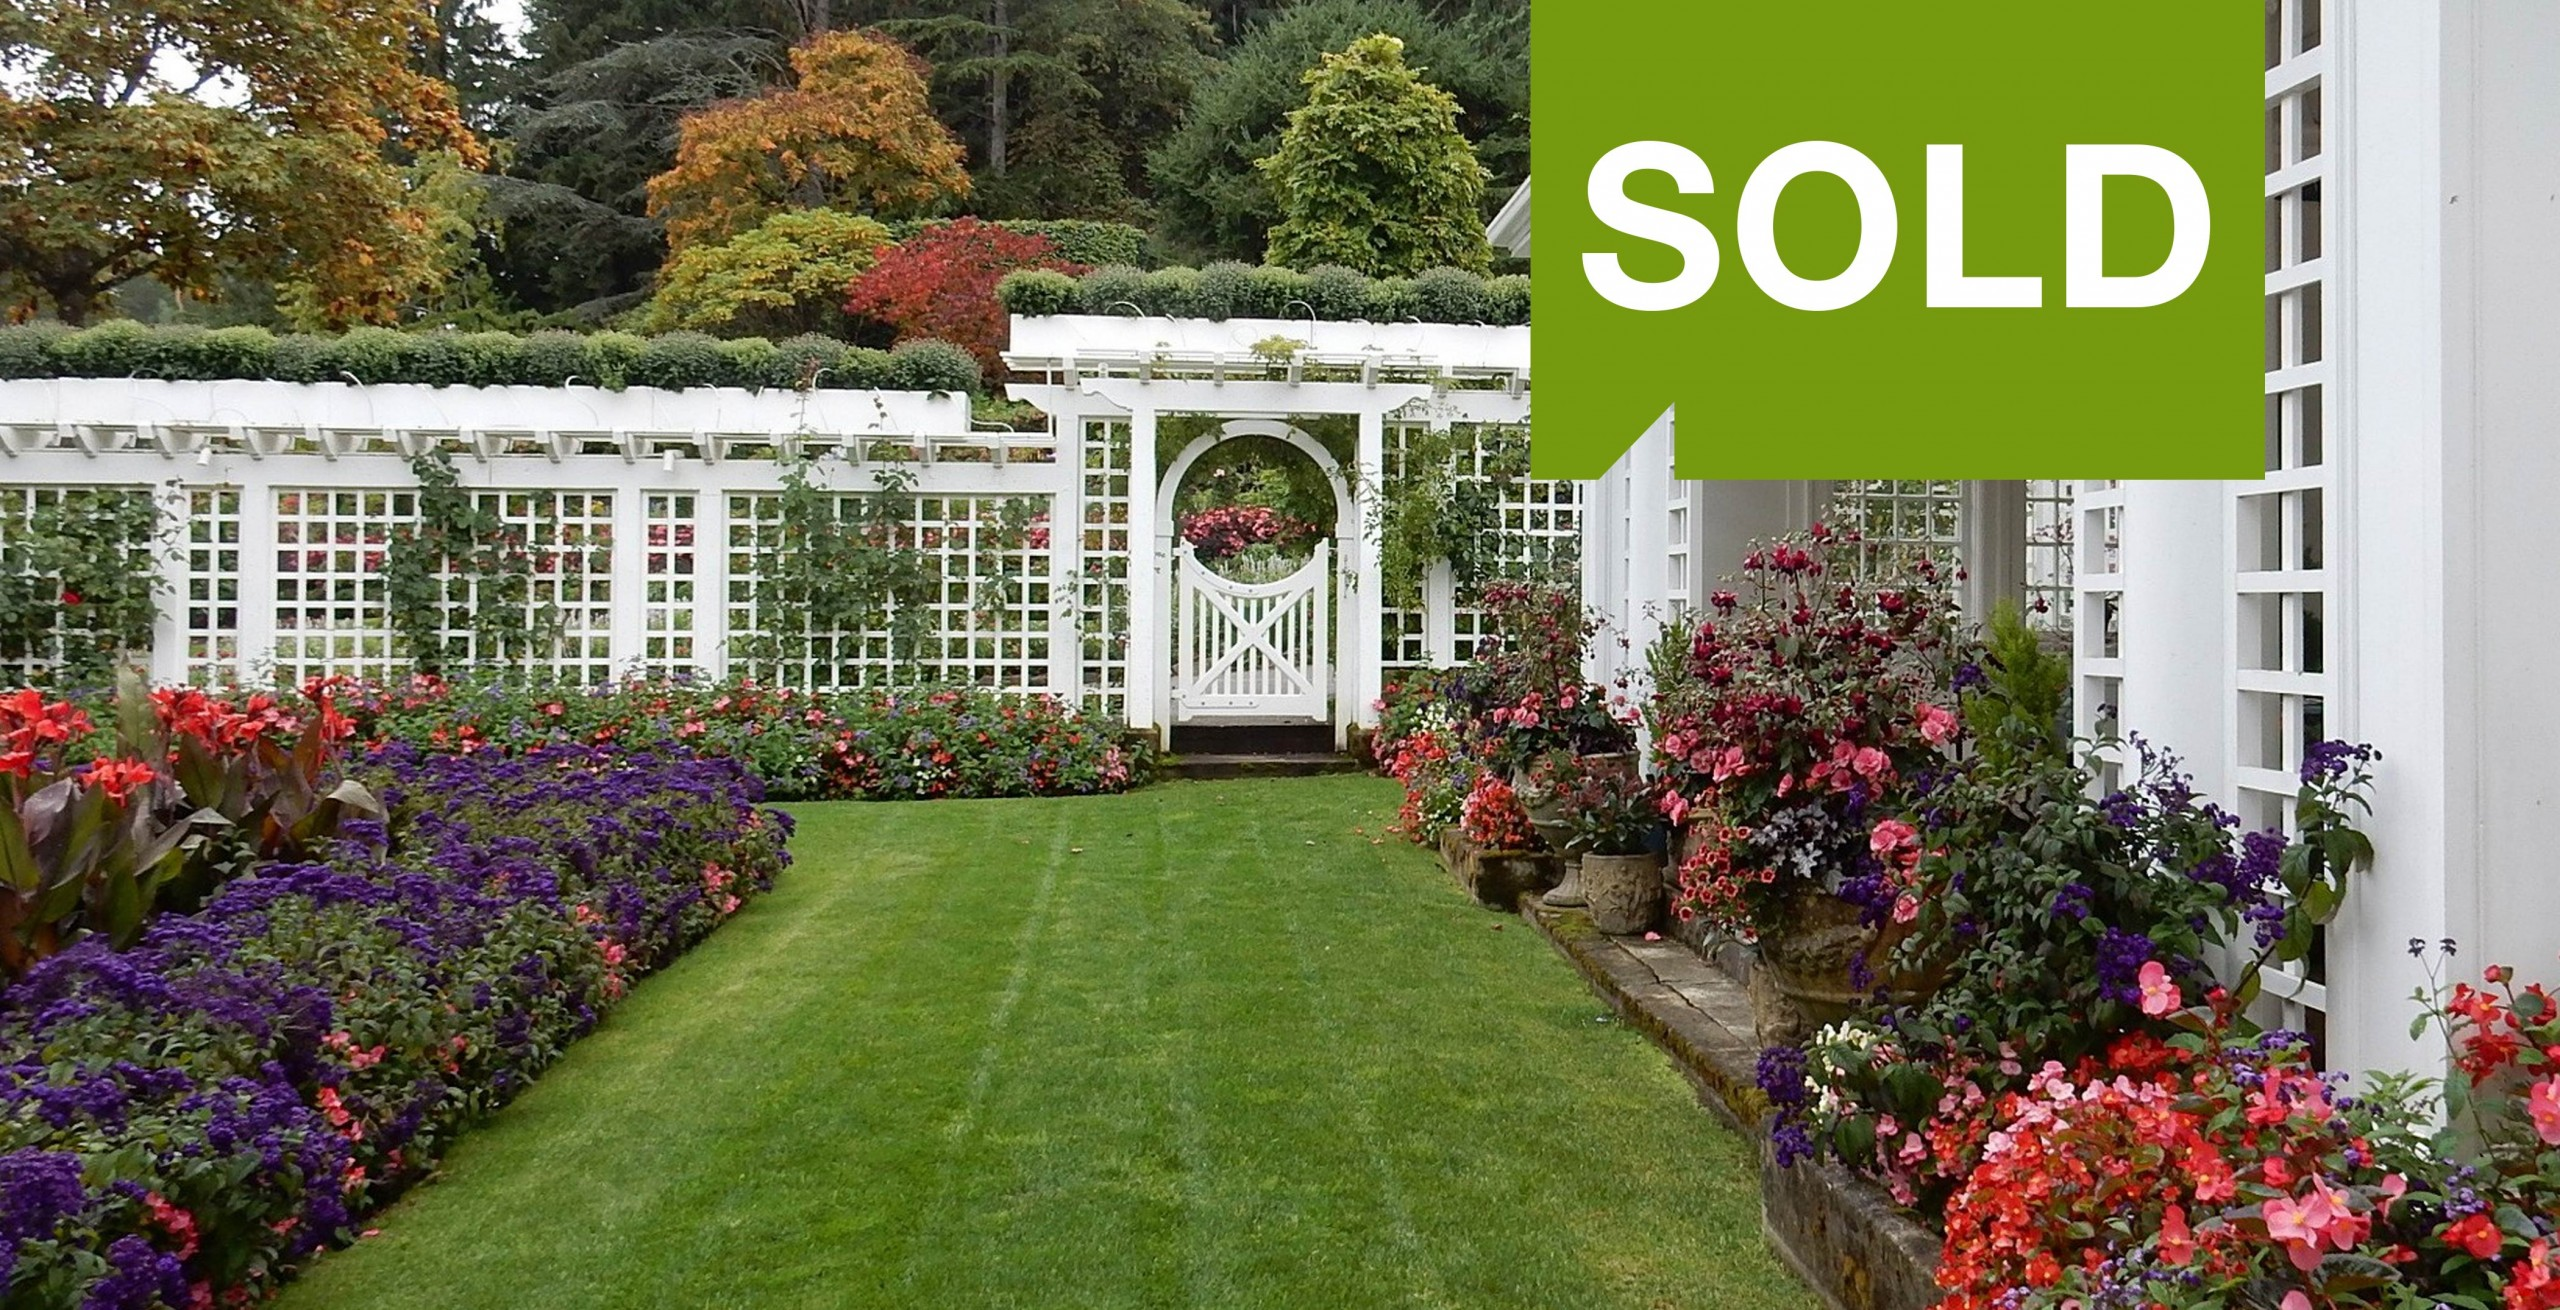 Just Sold: Professional Landscaping Company